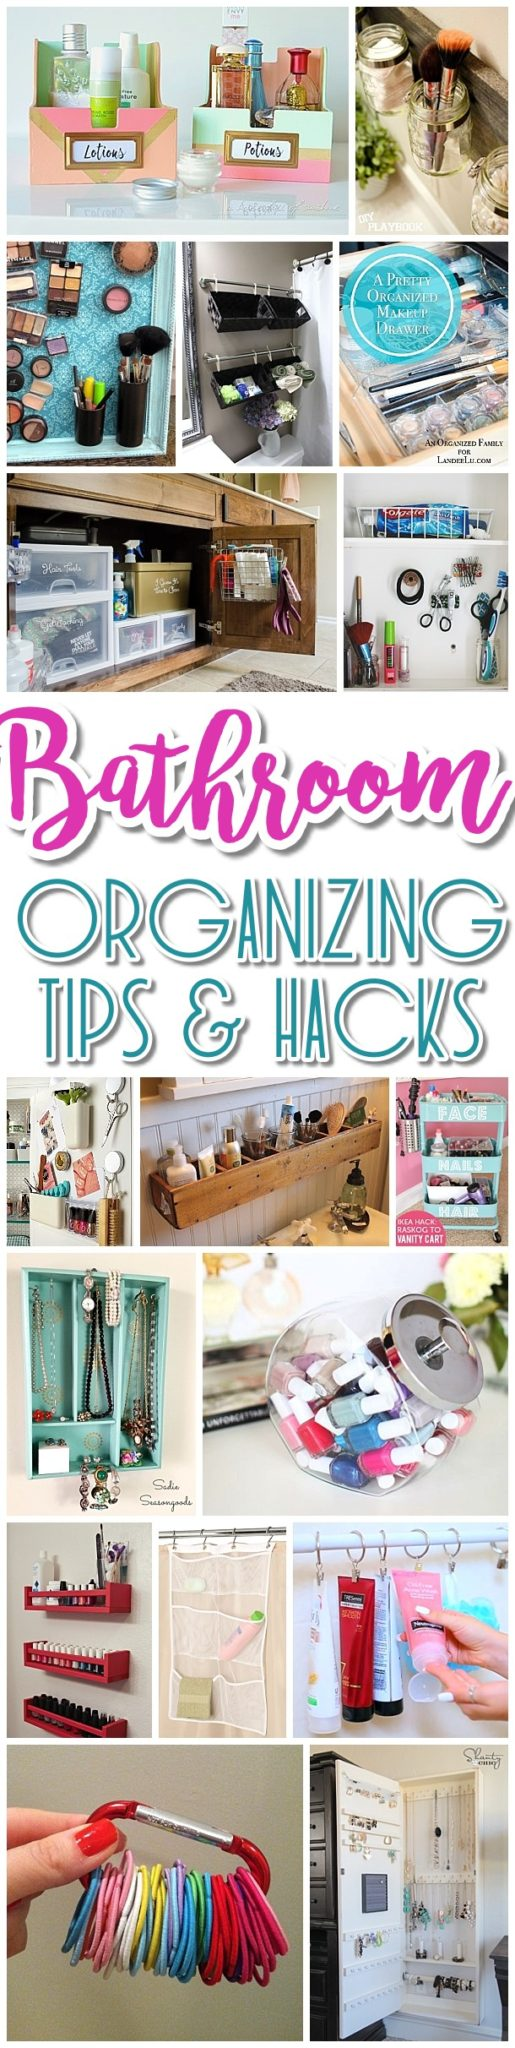 EASY Inexpensive Do it Yourself Ways to Organize and Decorate your Bathroom and Vanity -The BEST DIY Space Saving Projects and Organizing Ideas on a DIY Budget - Dreaming in DIY #bathroomorganization #bathroomideas #bathroomhacks #bathroomtips #organizethebathroom